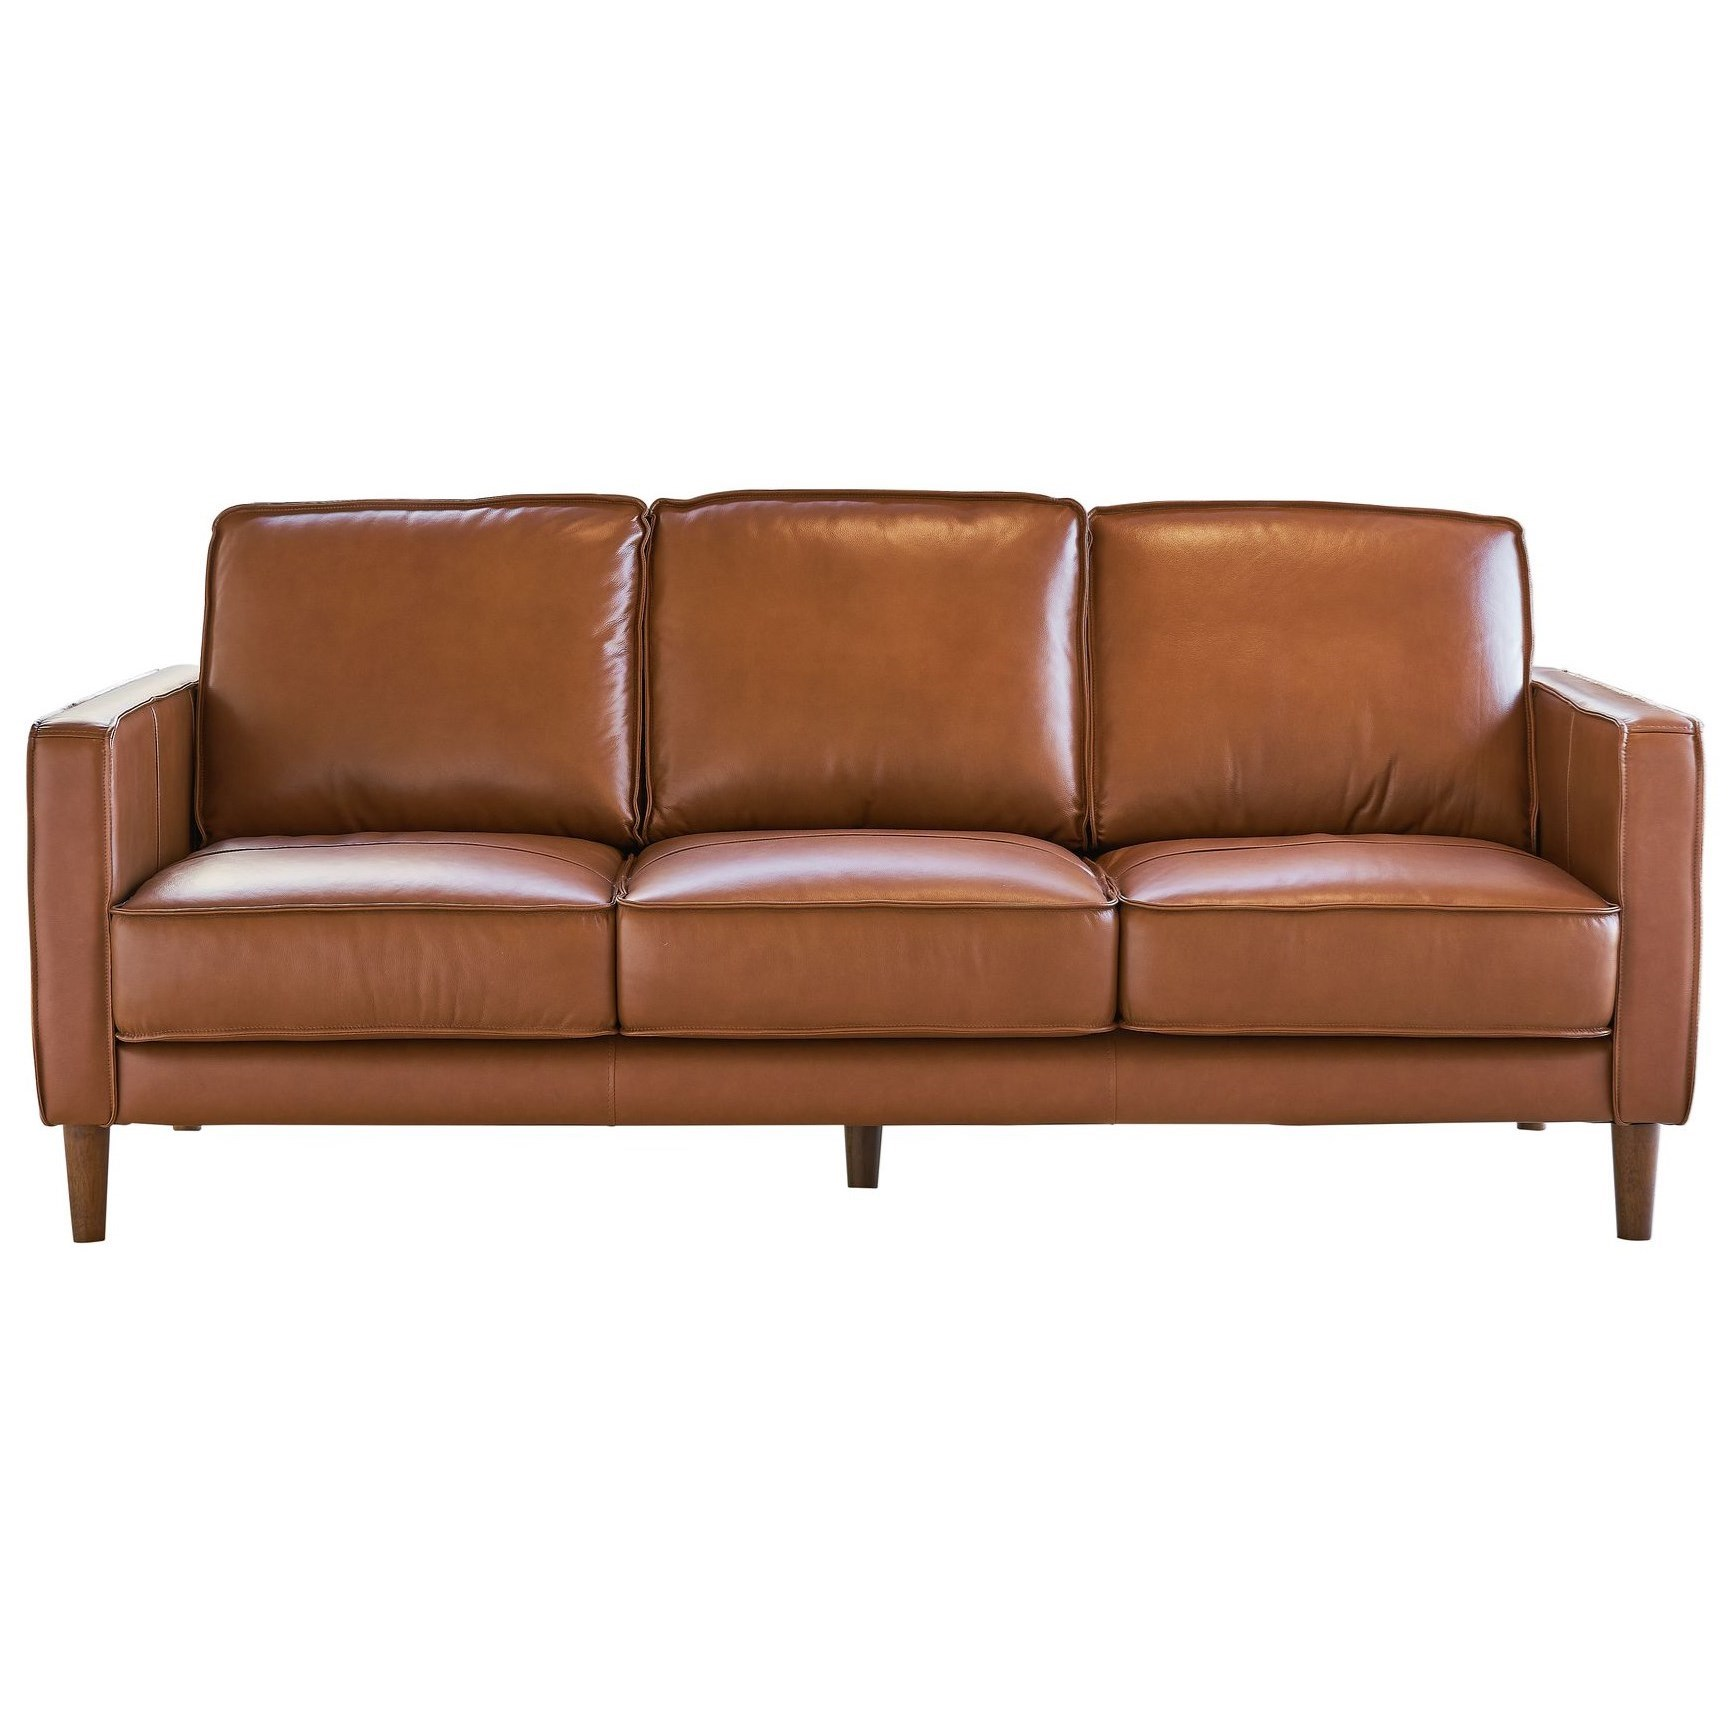 Pacer Sofa by Elements International at Becker Furniture